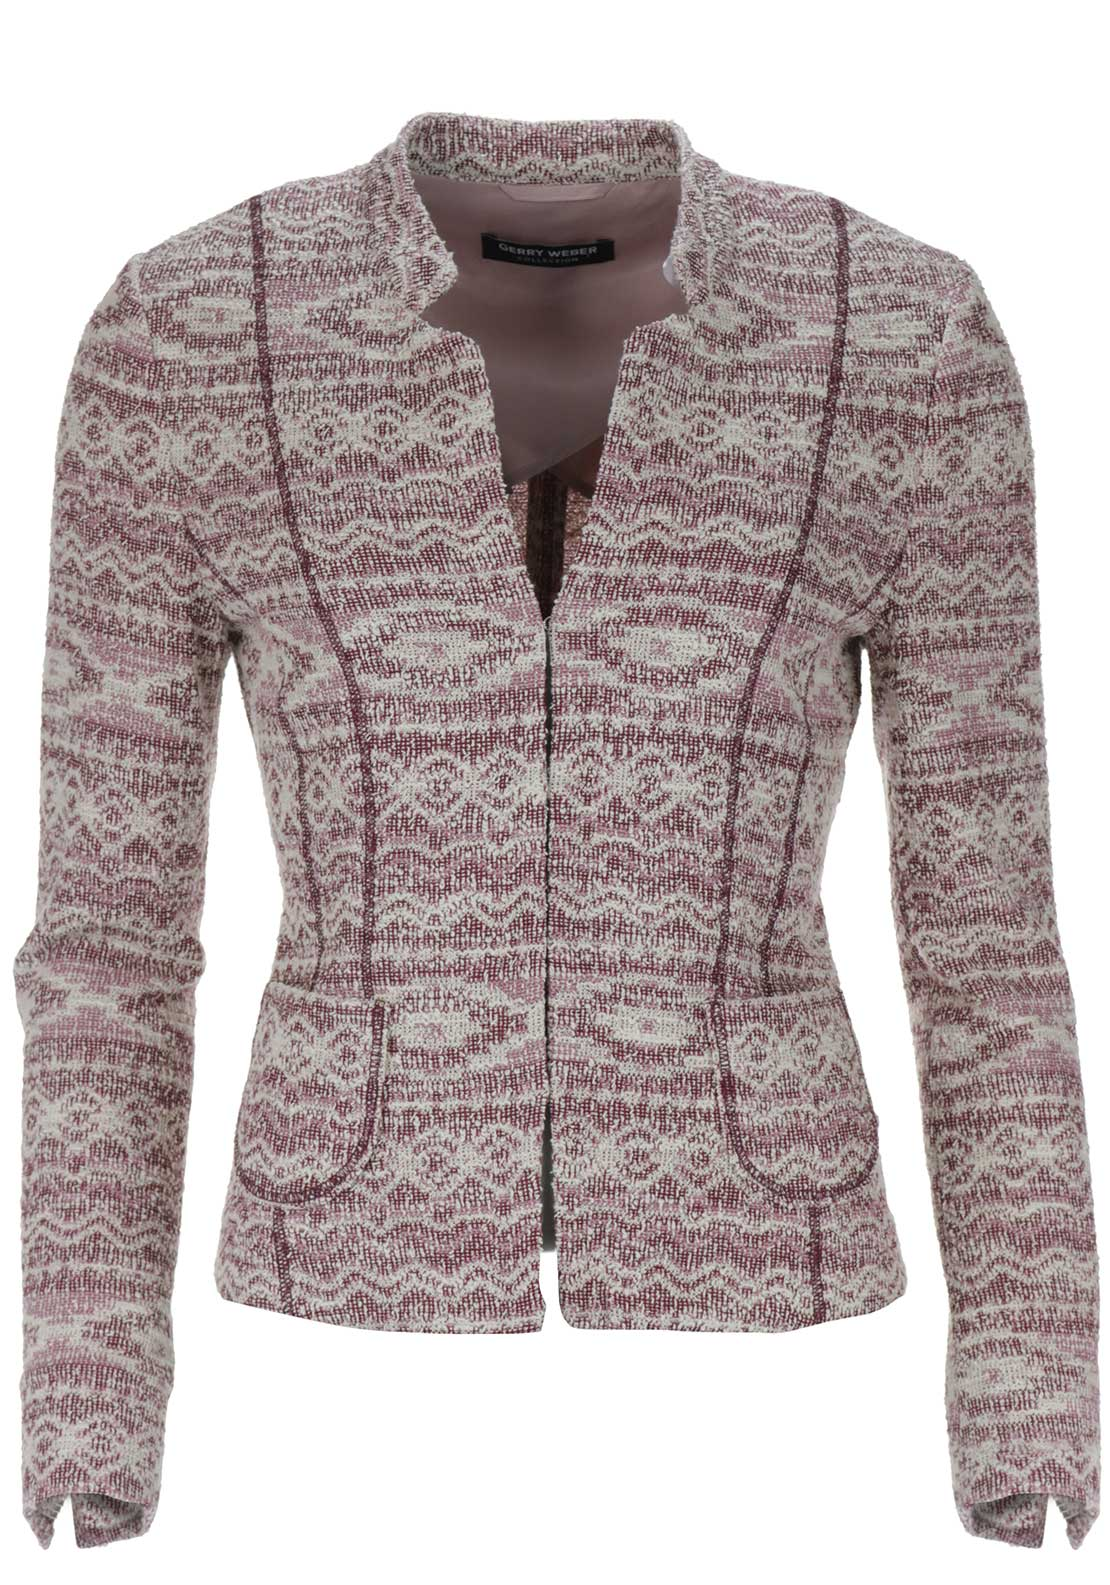 gerry weber cotton rich boucle jacket wine multi mcelhinneys. Black Bedroom Furniture Sets. Home Design Ideas